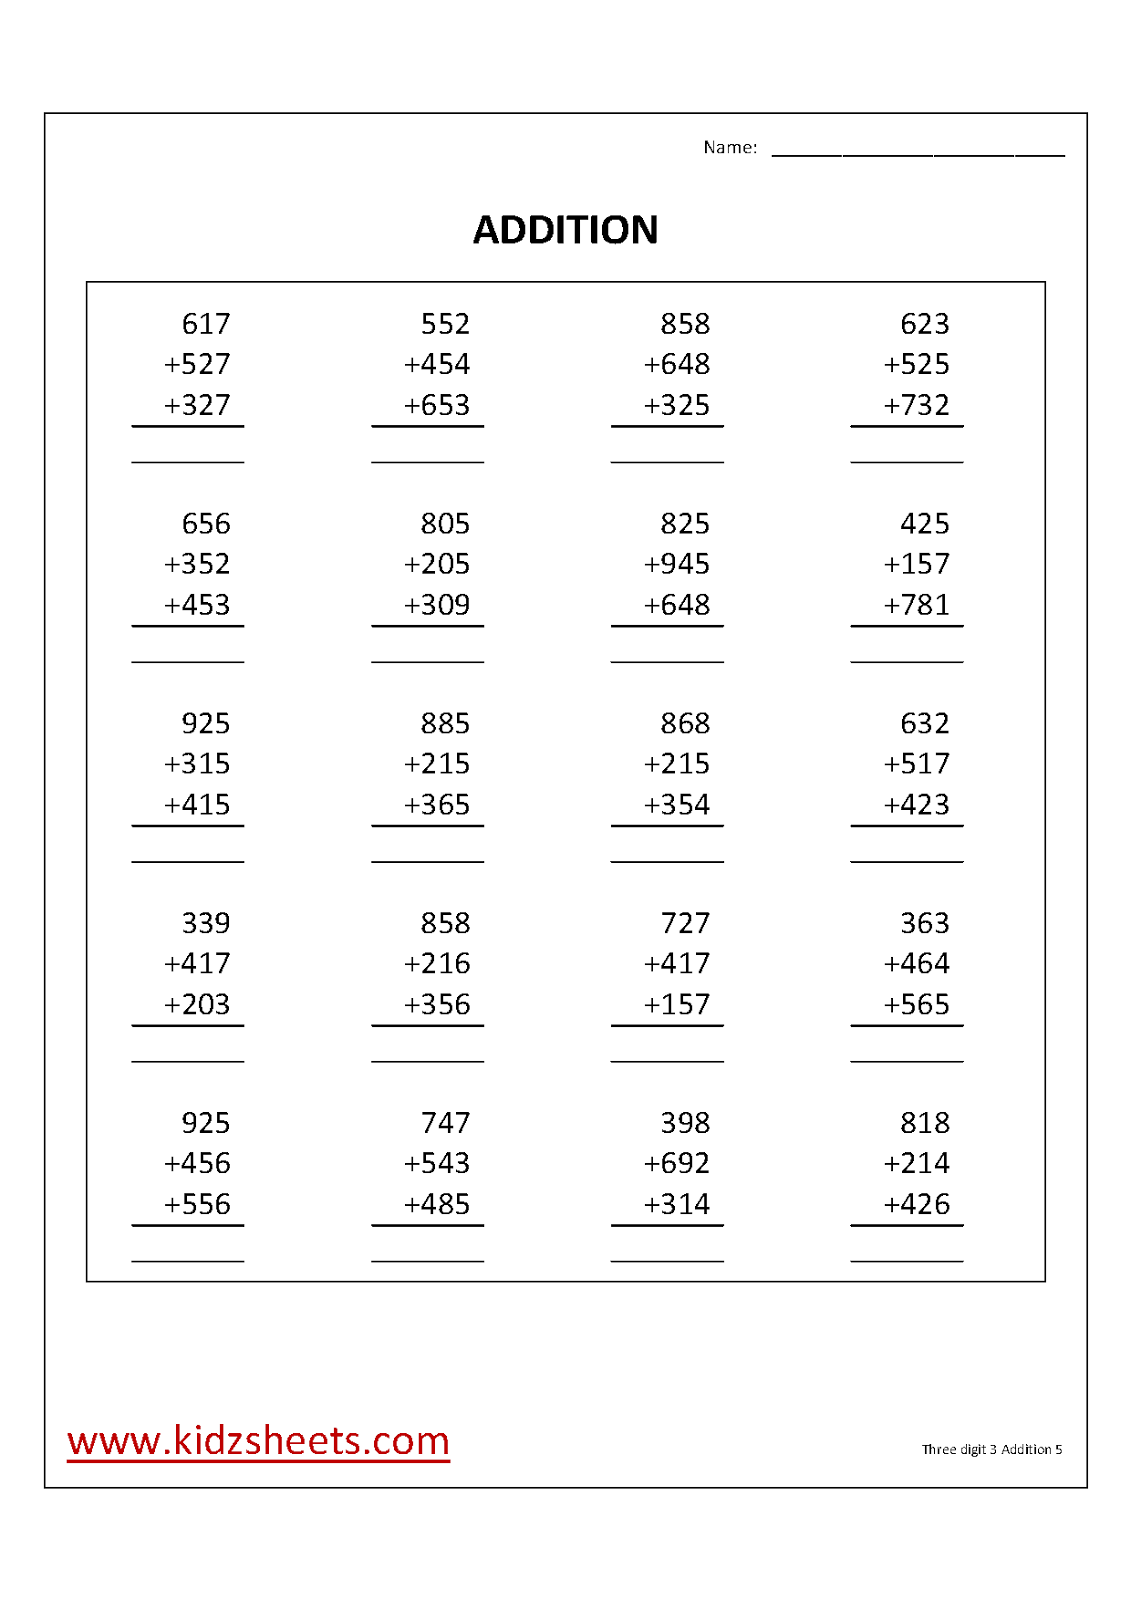 small resolution of Kidz Worksheets: Third Grade Three digit 3 Number Addition Worksheet5